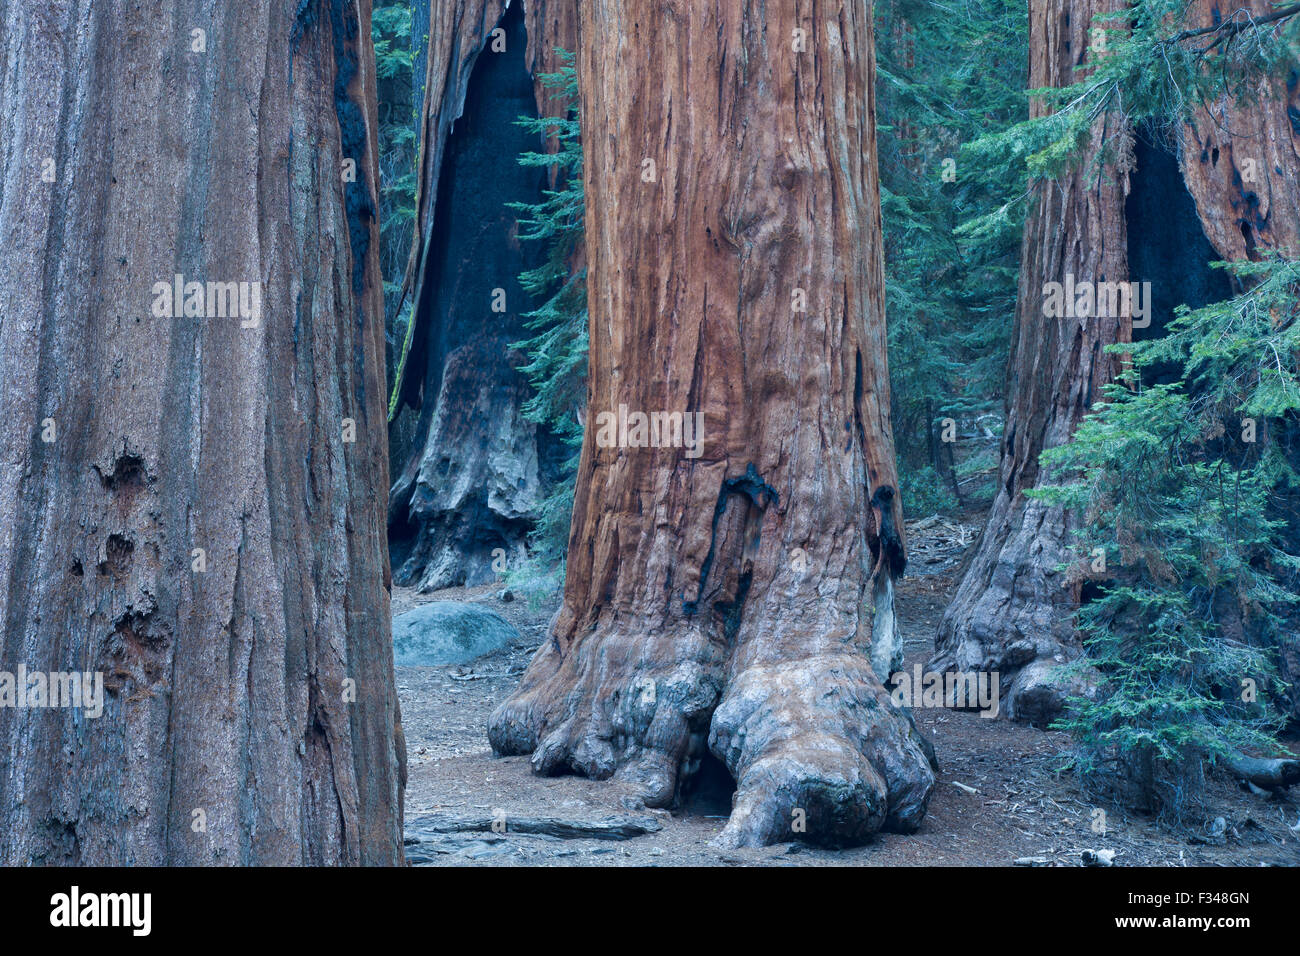 giant sequoia trees in Sequoia National Park, California, USA - Stock Image